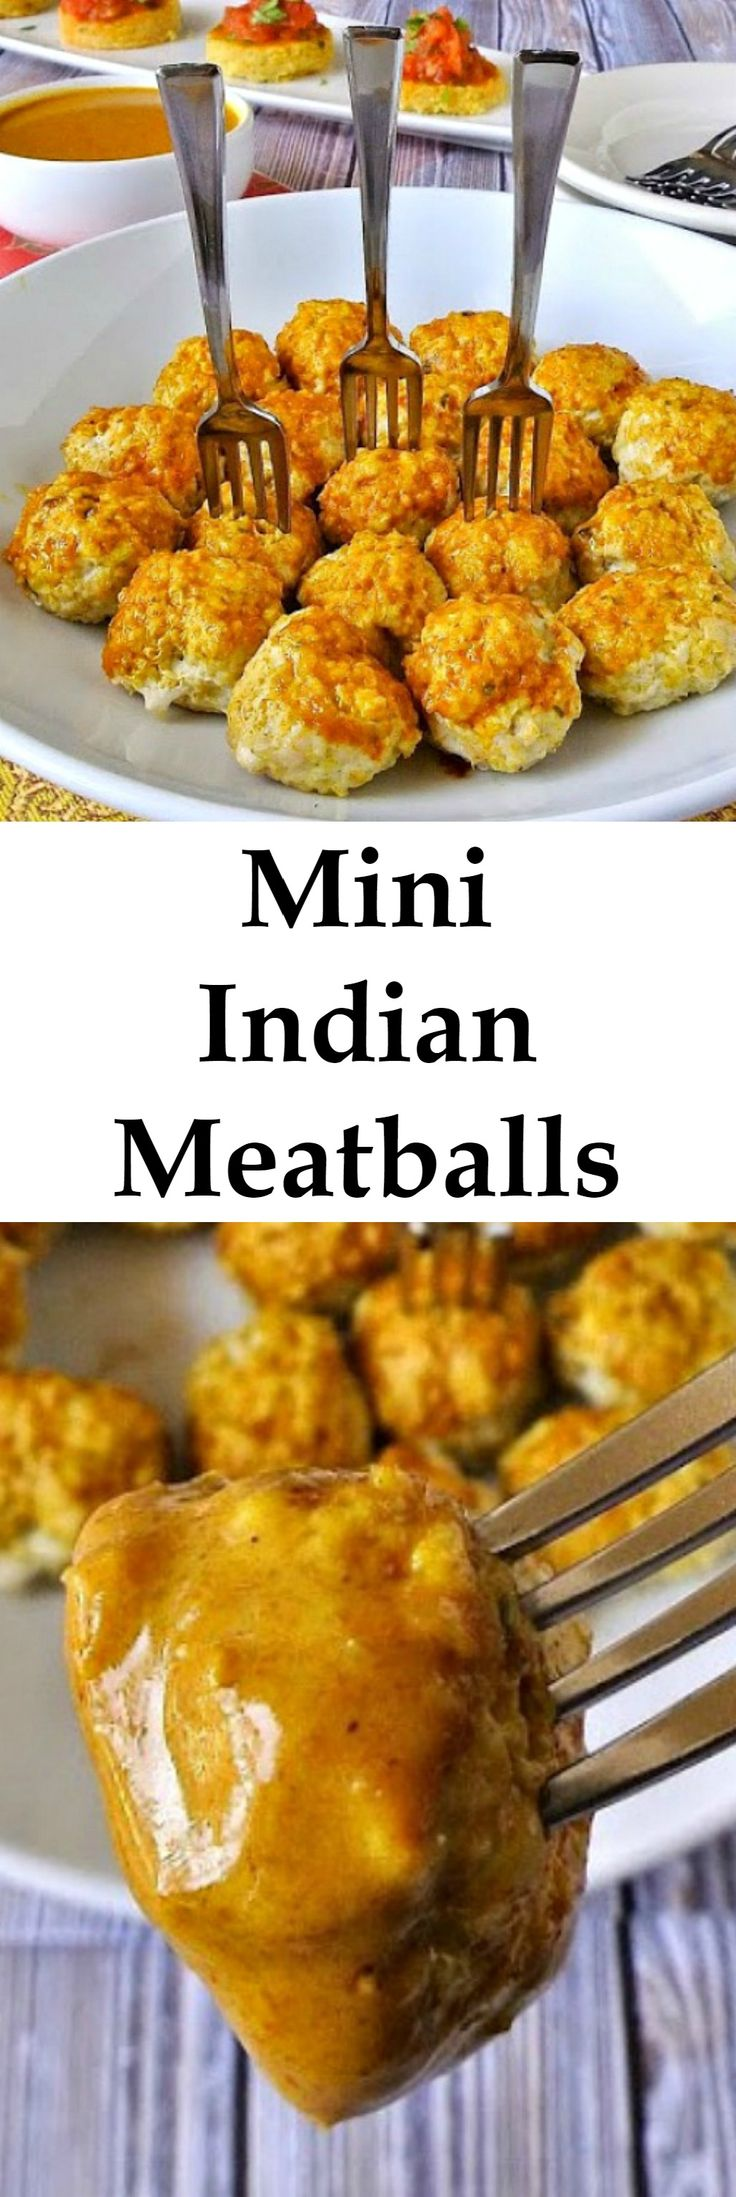 Mini Indian meatballs are really easy to make and are the perfect appetizer at…